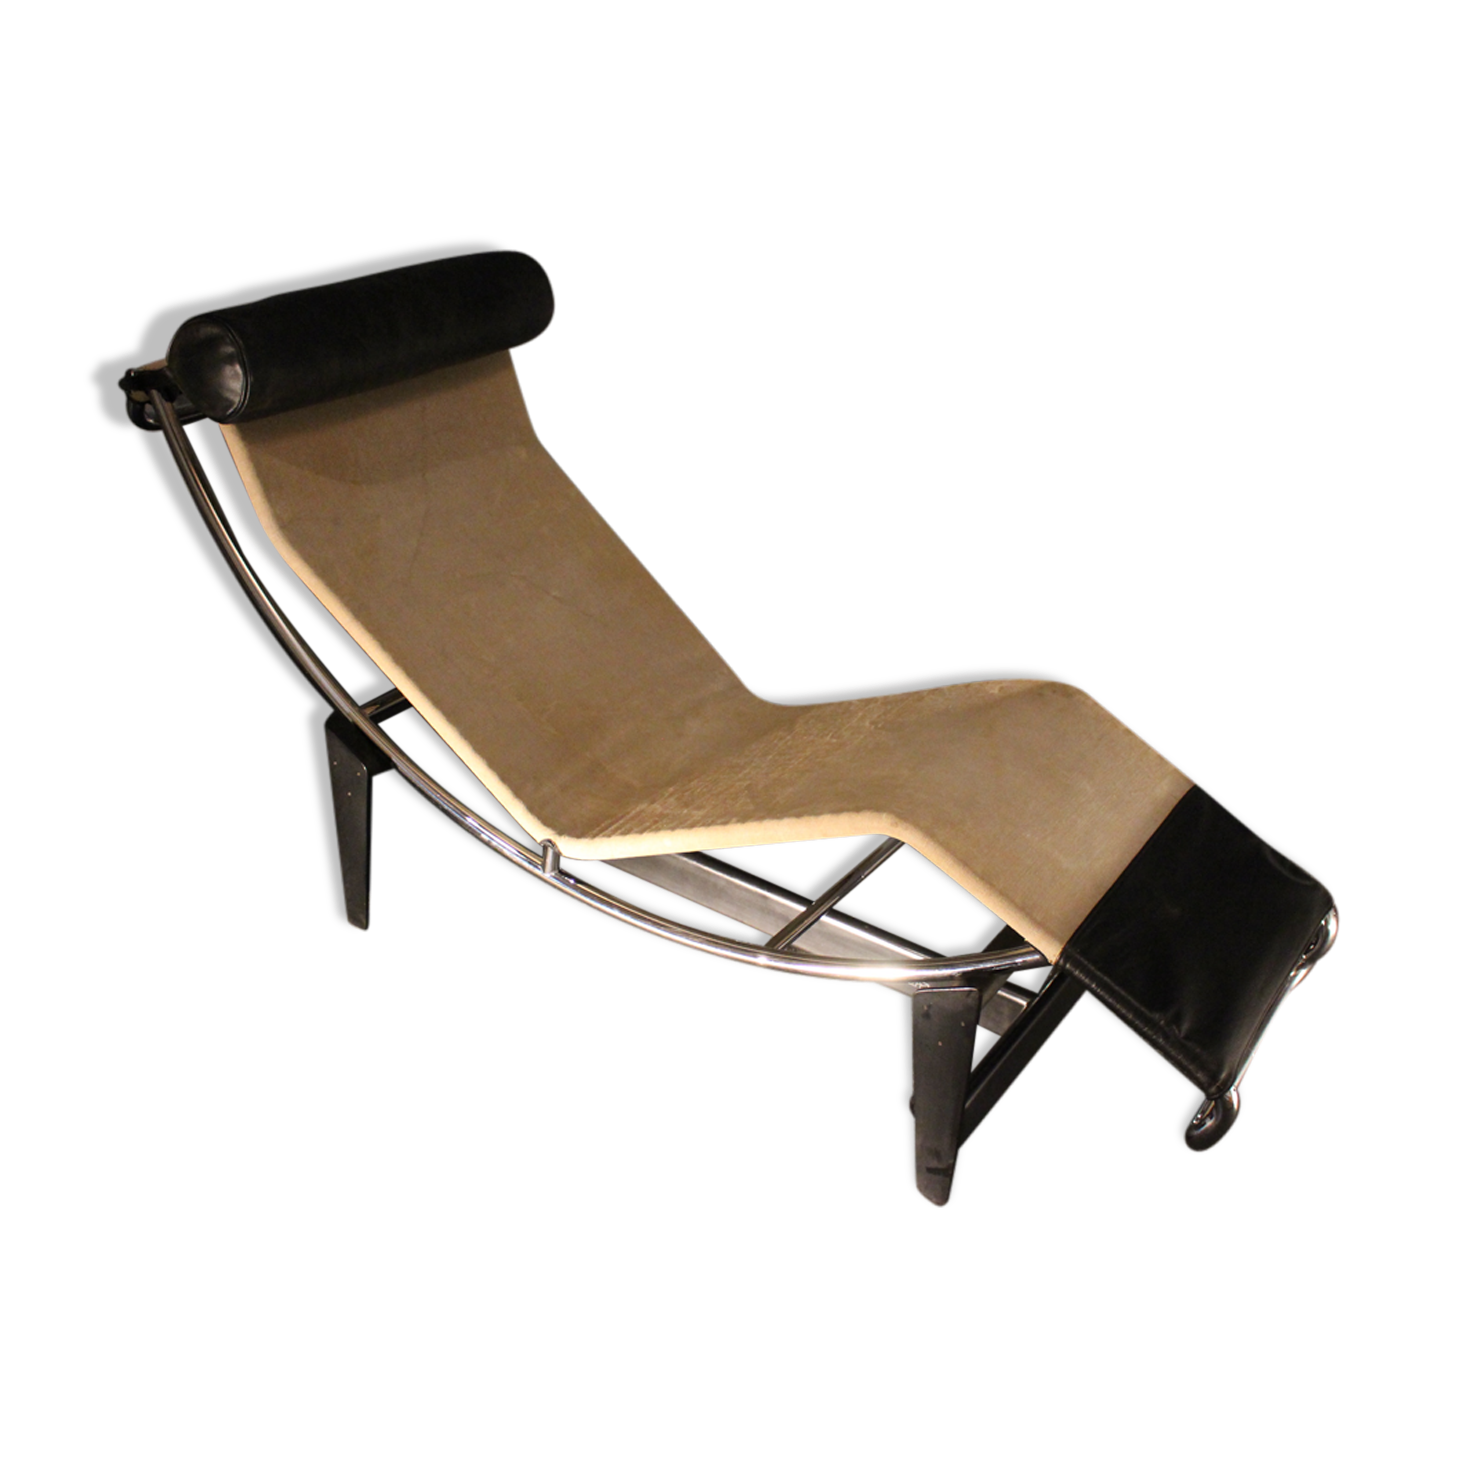 chaise le corbusier prix excellent le corbusier lc chaise longue cassina le corbusier chaise. Black Bedroom Furniture Sets. Home Design Ideas